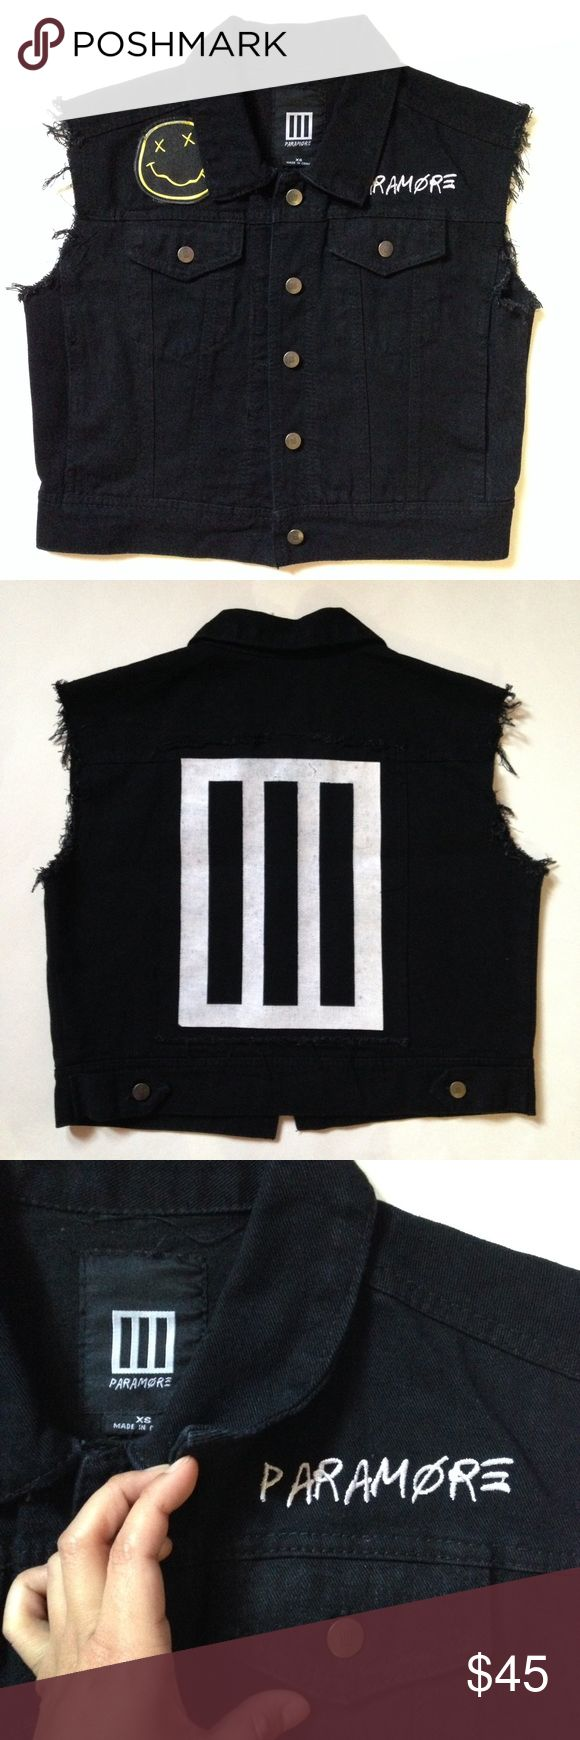 Frayed Paramore Vest Black vest has Paramore's logo on the back along with logo buttons, 4 pockets & bands name. I added the nirvana patch. I don't wear it enough. Purchased on fueledbyramen (no longer being sold)  It's unisex but fits a SM-MD best Paramore Jackets & Coats Vests